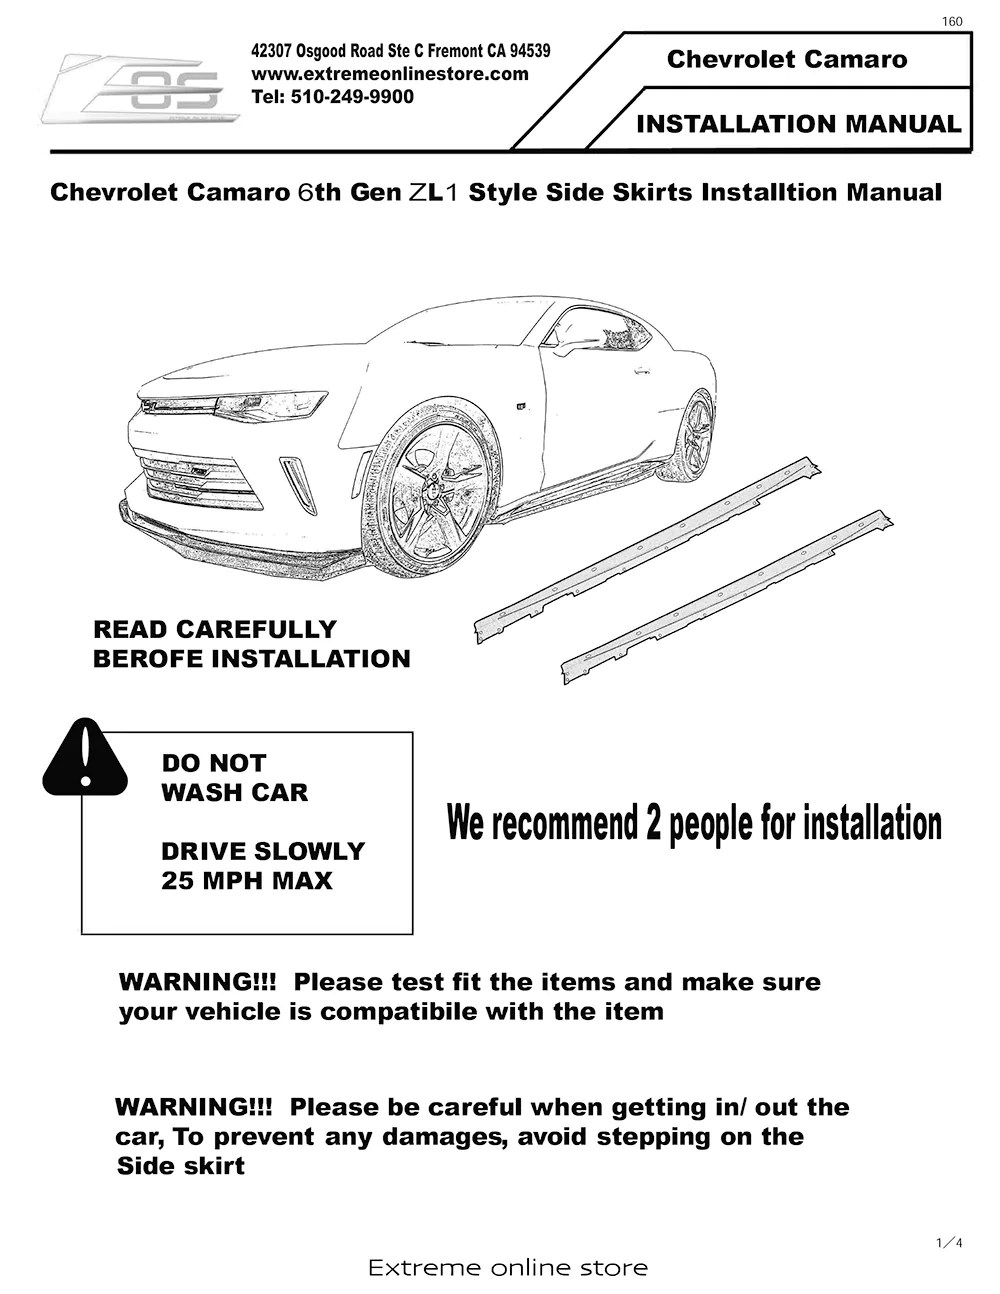 medium resolution of 6th gen camaro zl1 side skirts rocker panels installation instruction